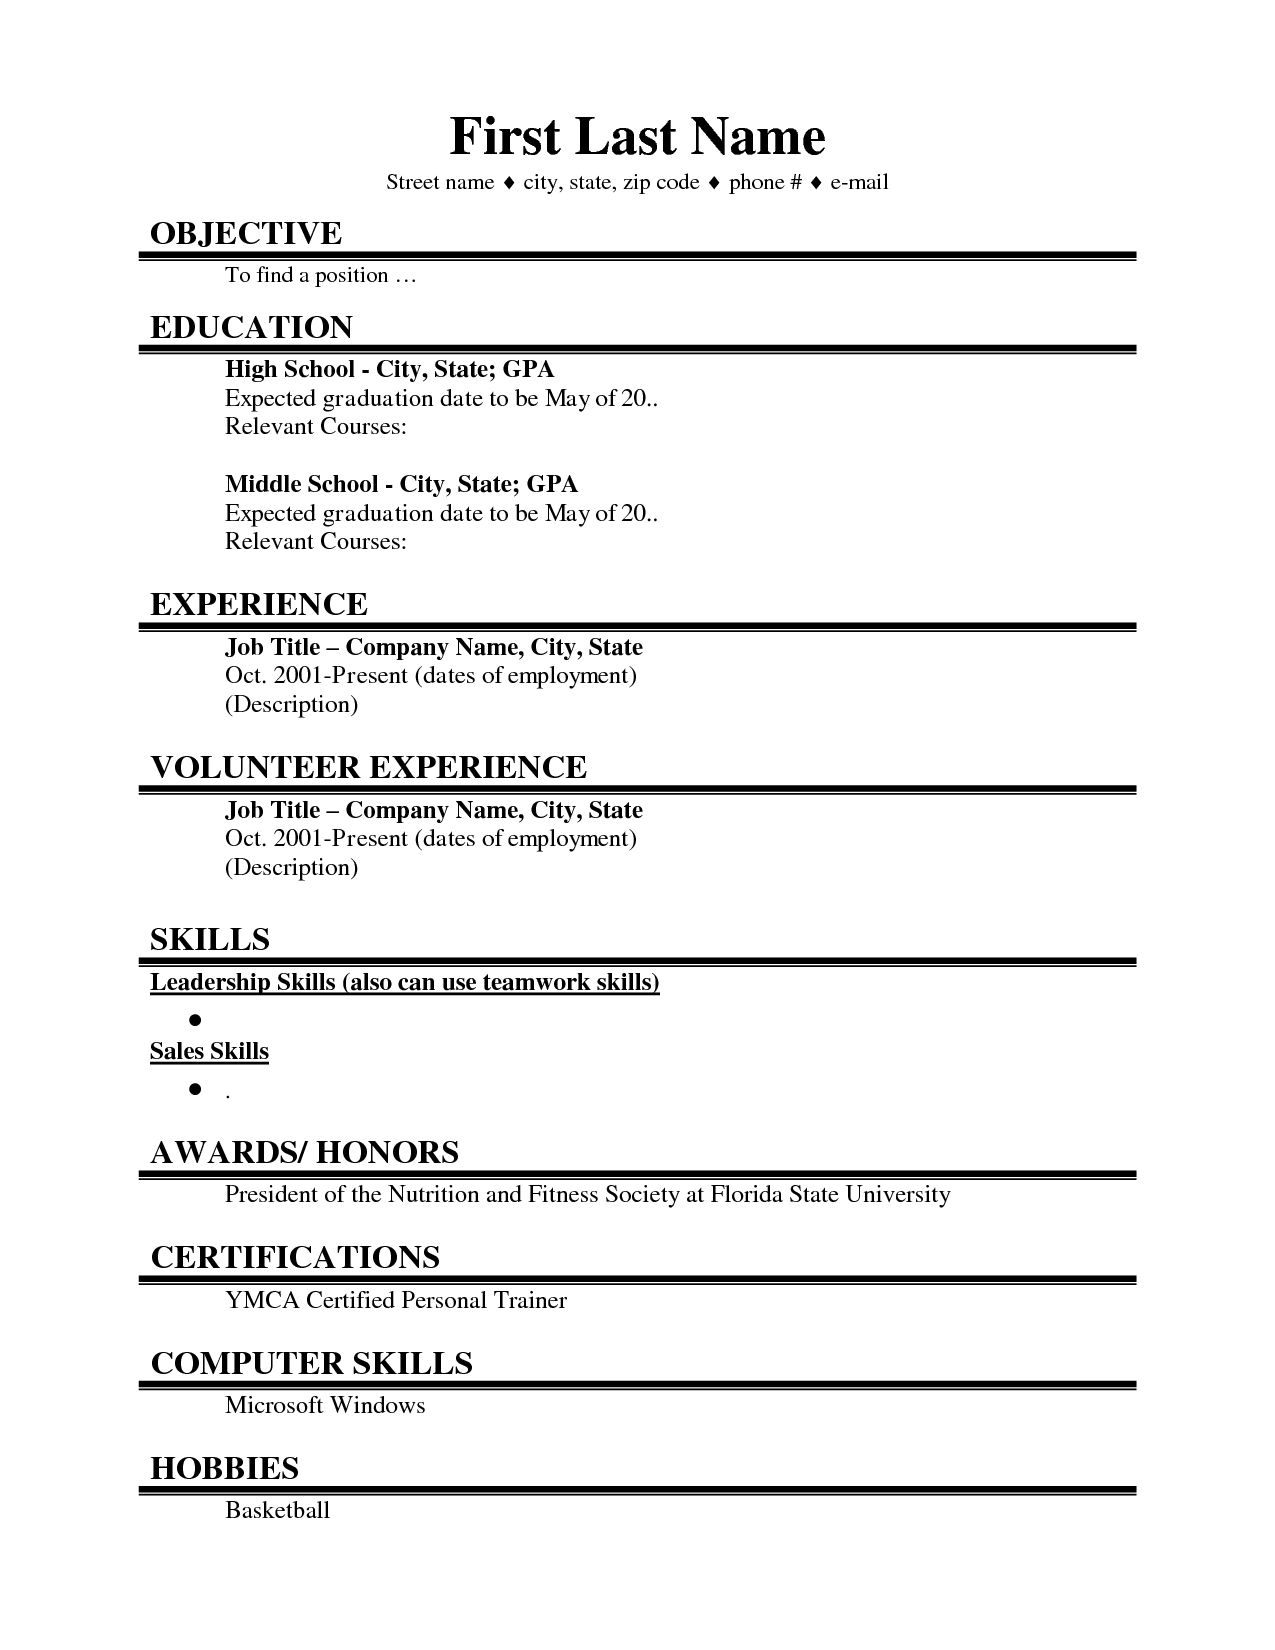 Student Resume Example Job Resume Examples For College Students Job Resume Examples For